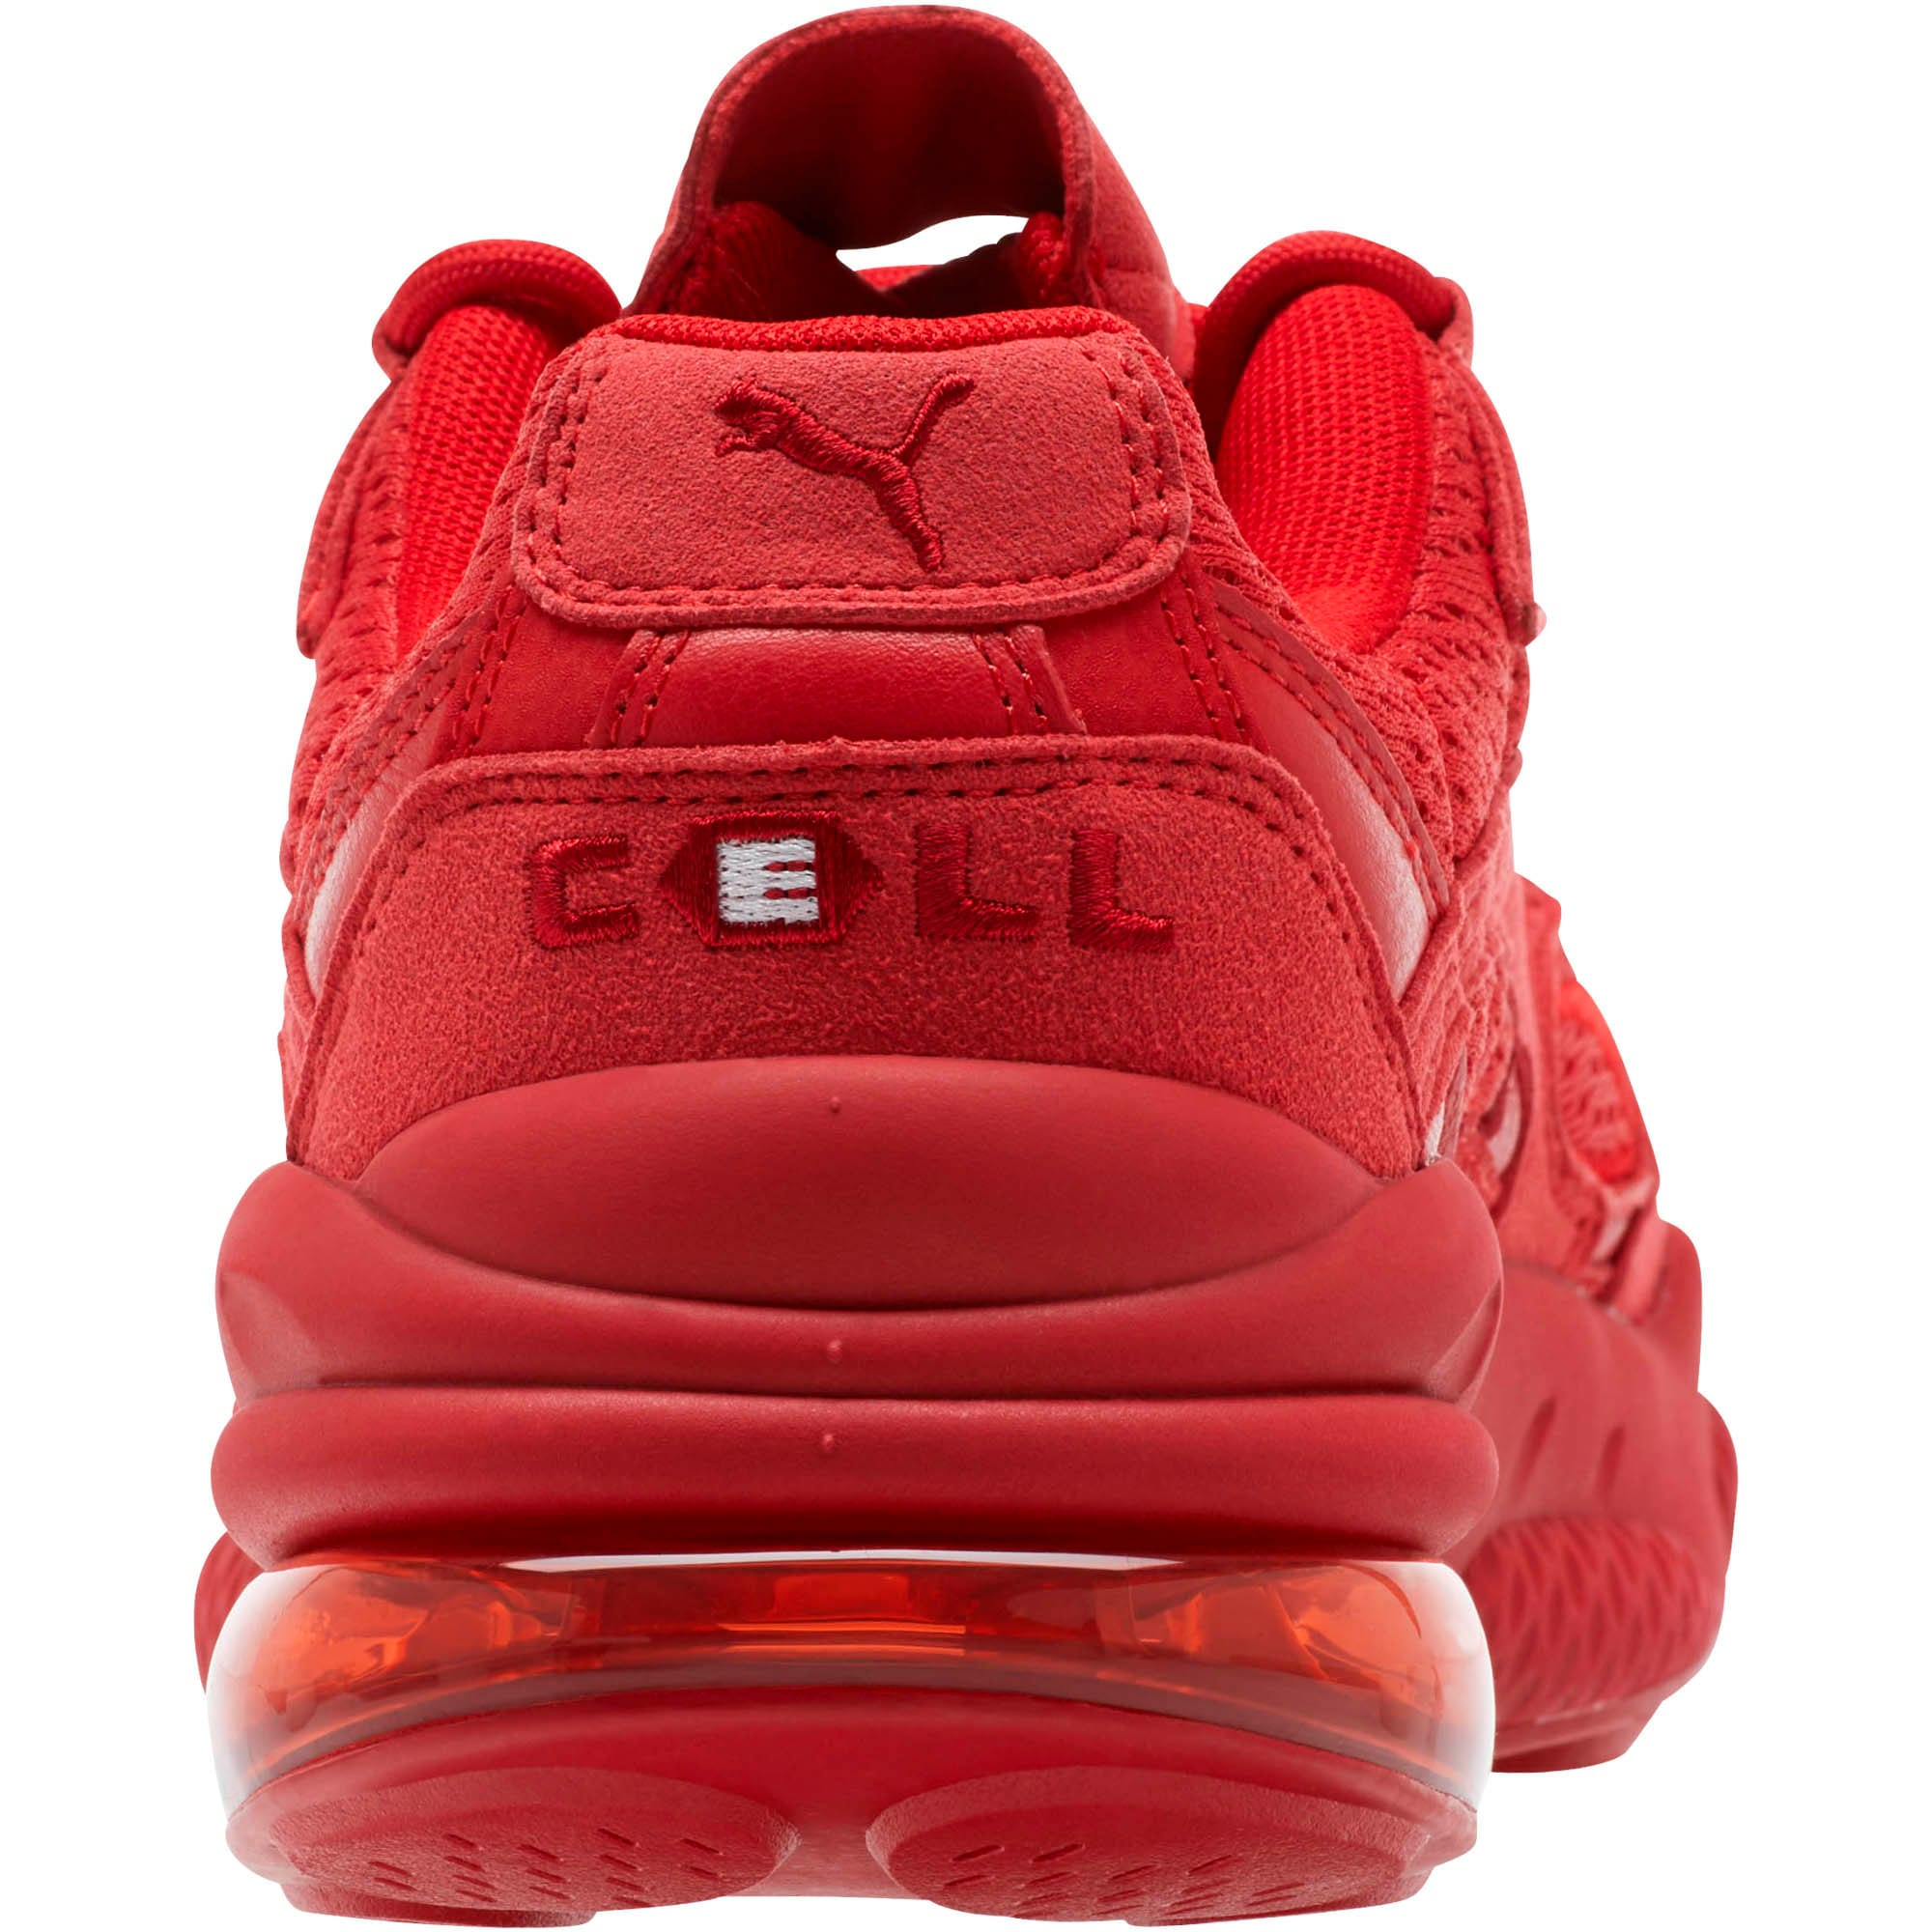 Thumbnail 3 of CELL Venom Red Sneakers, Ribbon Red-Tibetan Red, medium